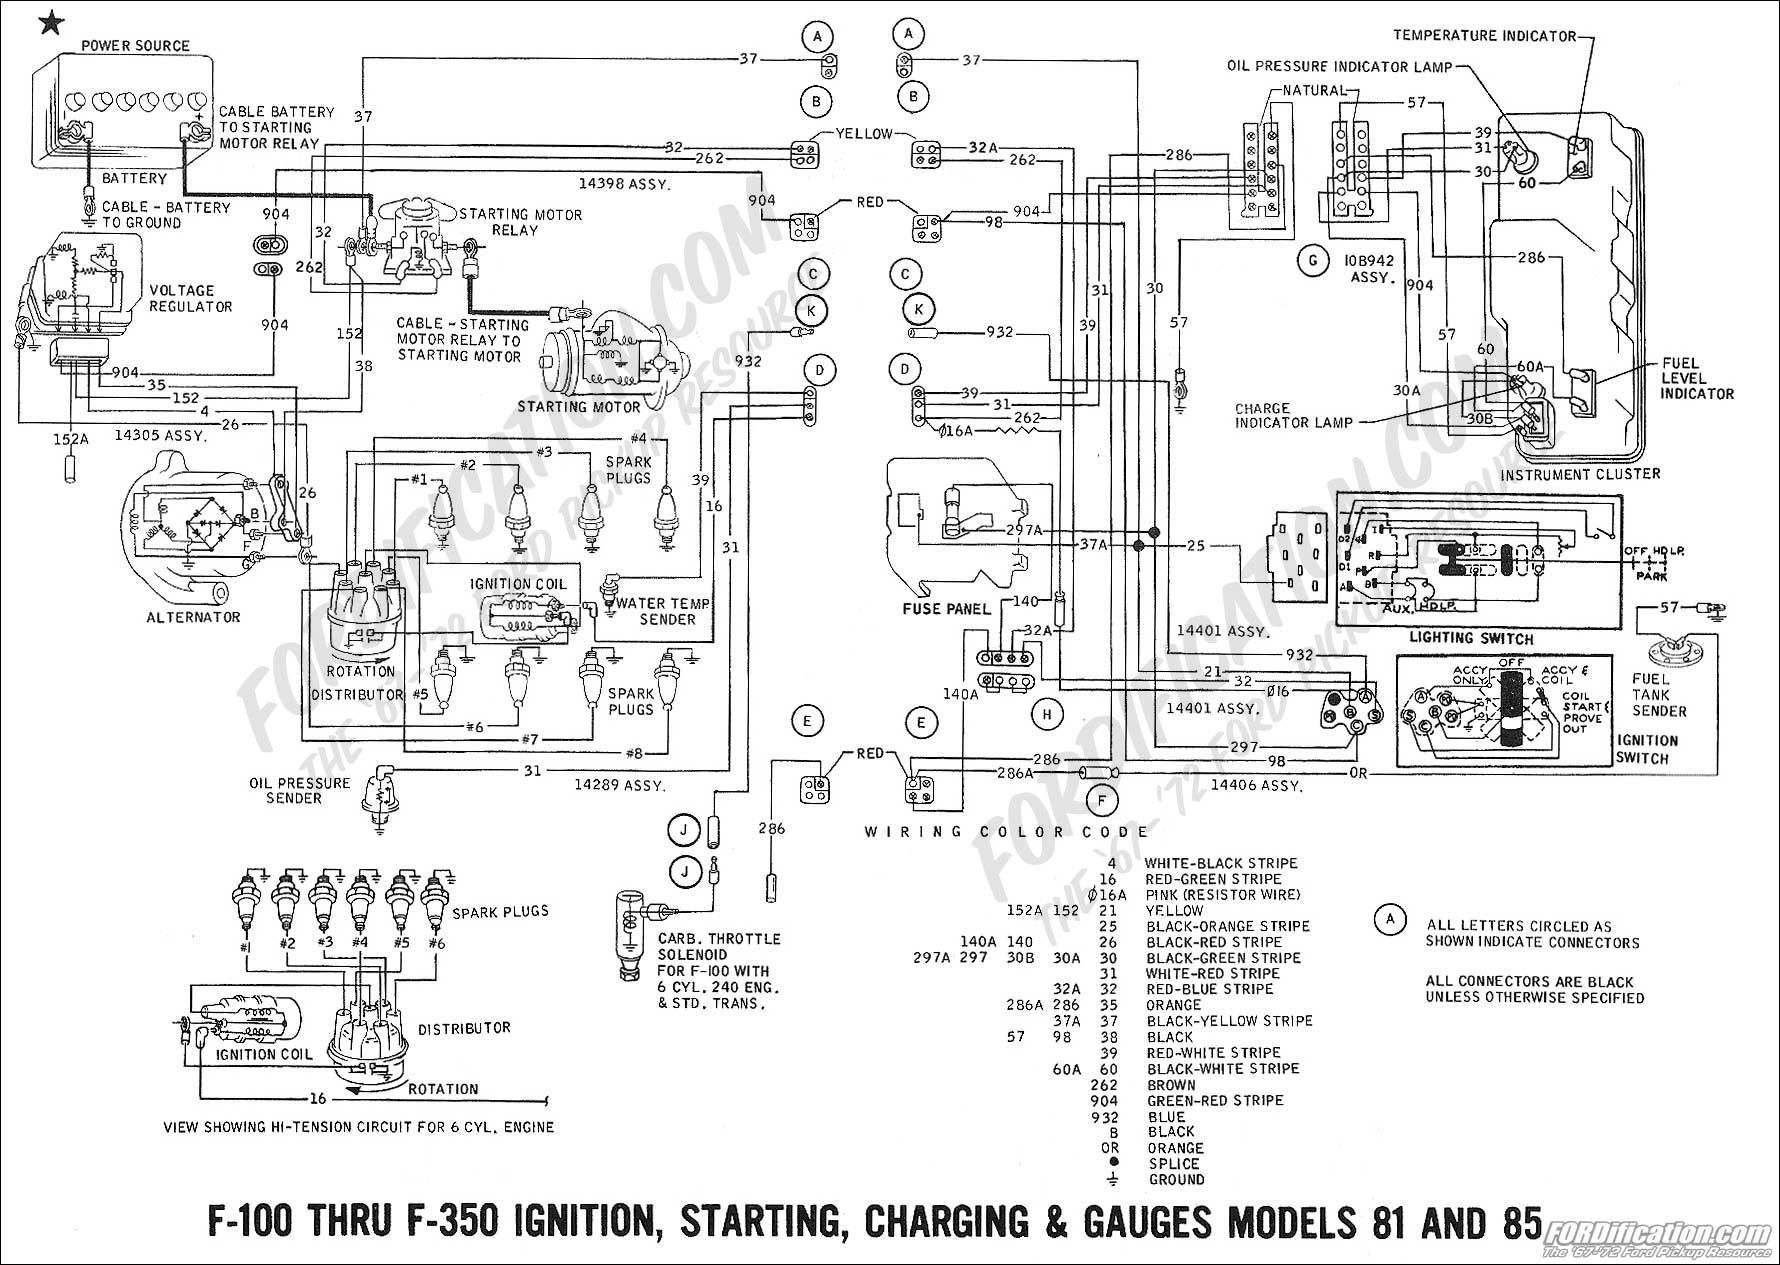 hight resolution of 1973 ford bronco wiring harness option wiring diagram 1972 ford f100 truck wiring harness autos weblog